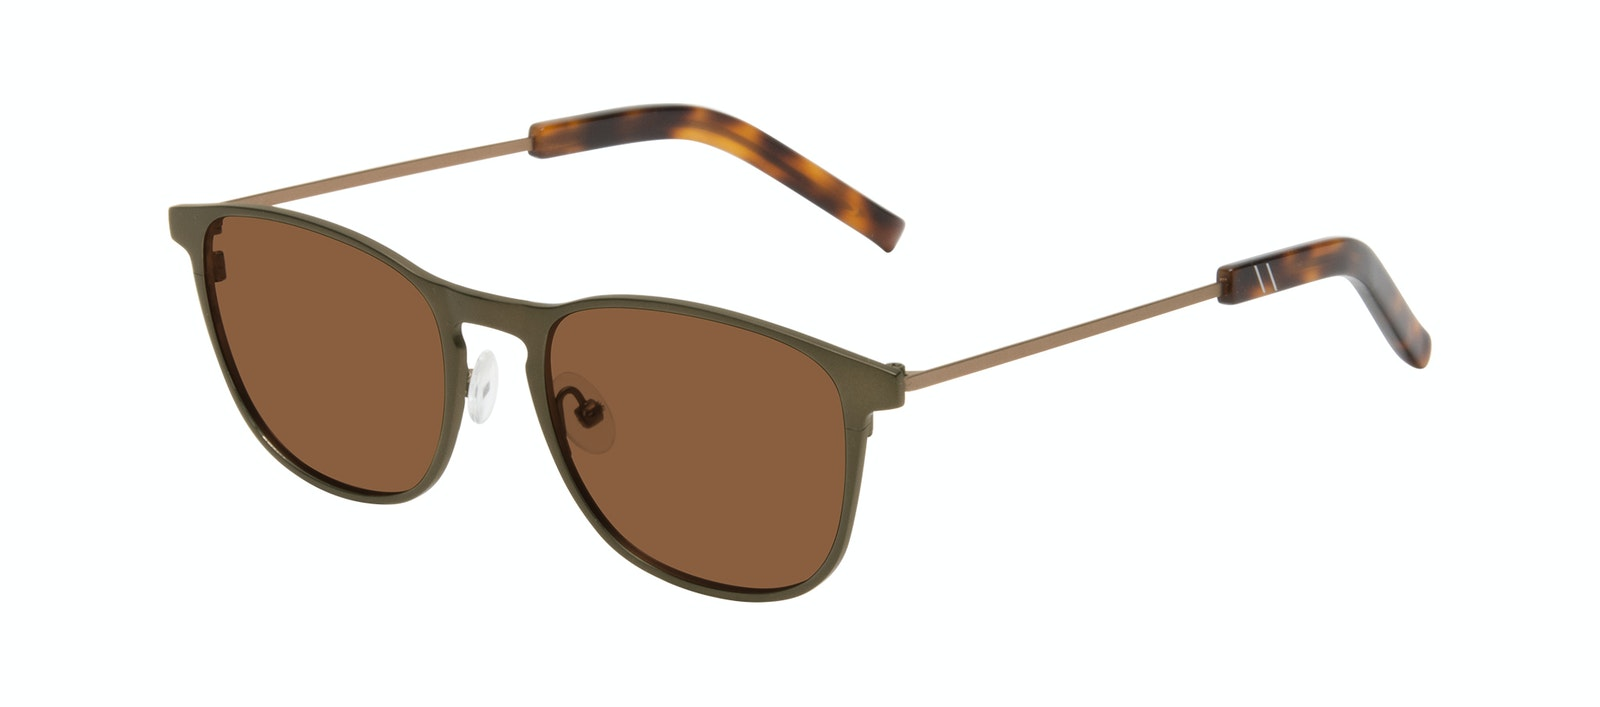 Affordable Fashion Glasses Square Sunglasses Men Elevate Khaki Tilt